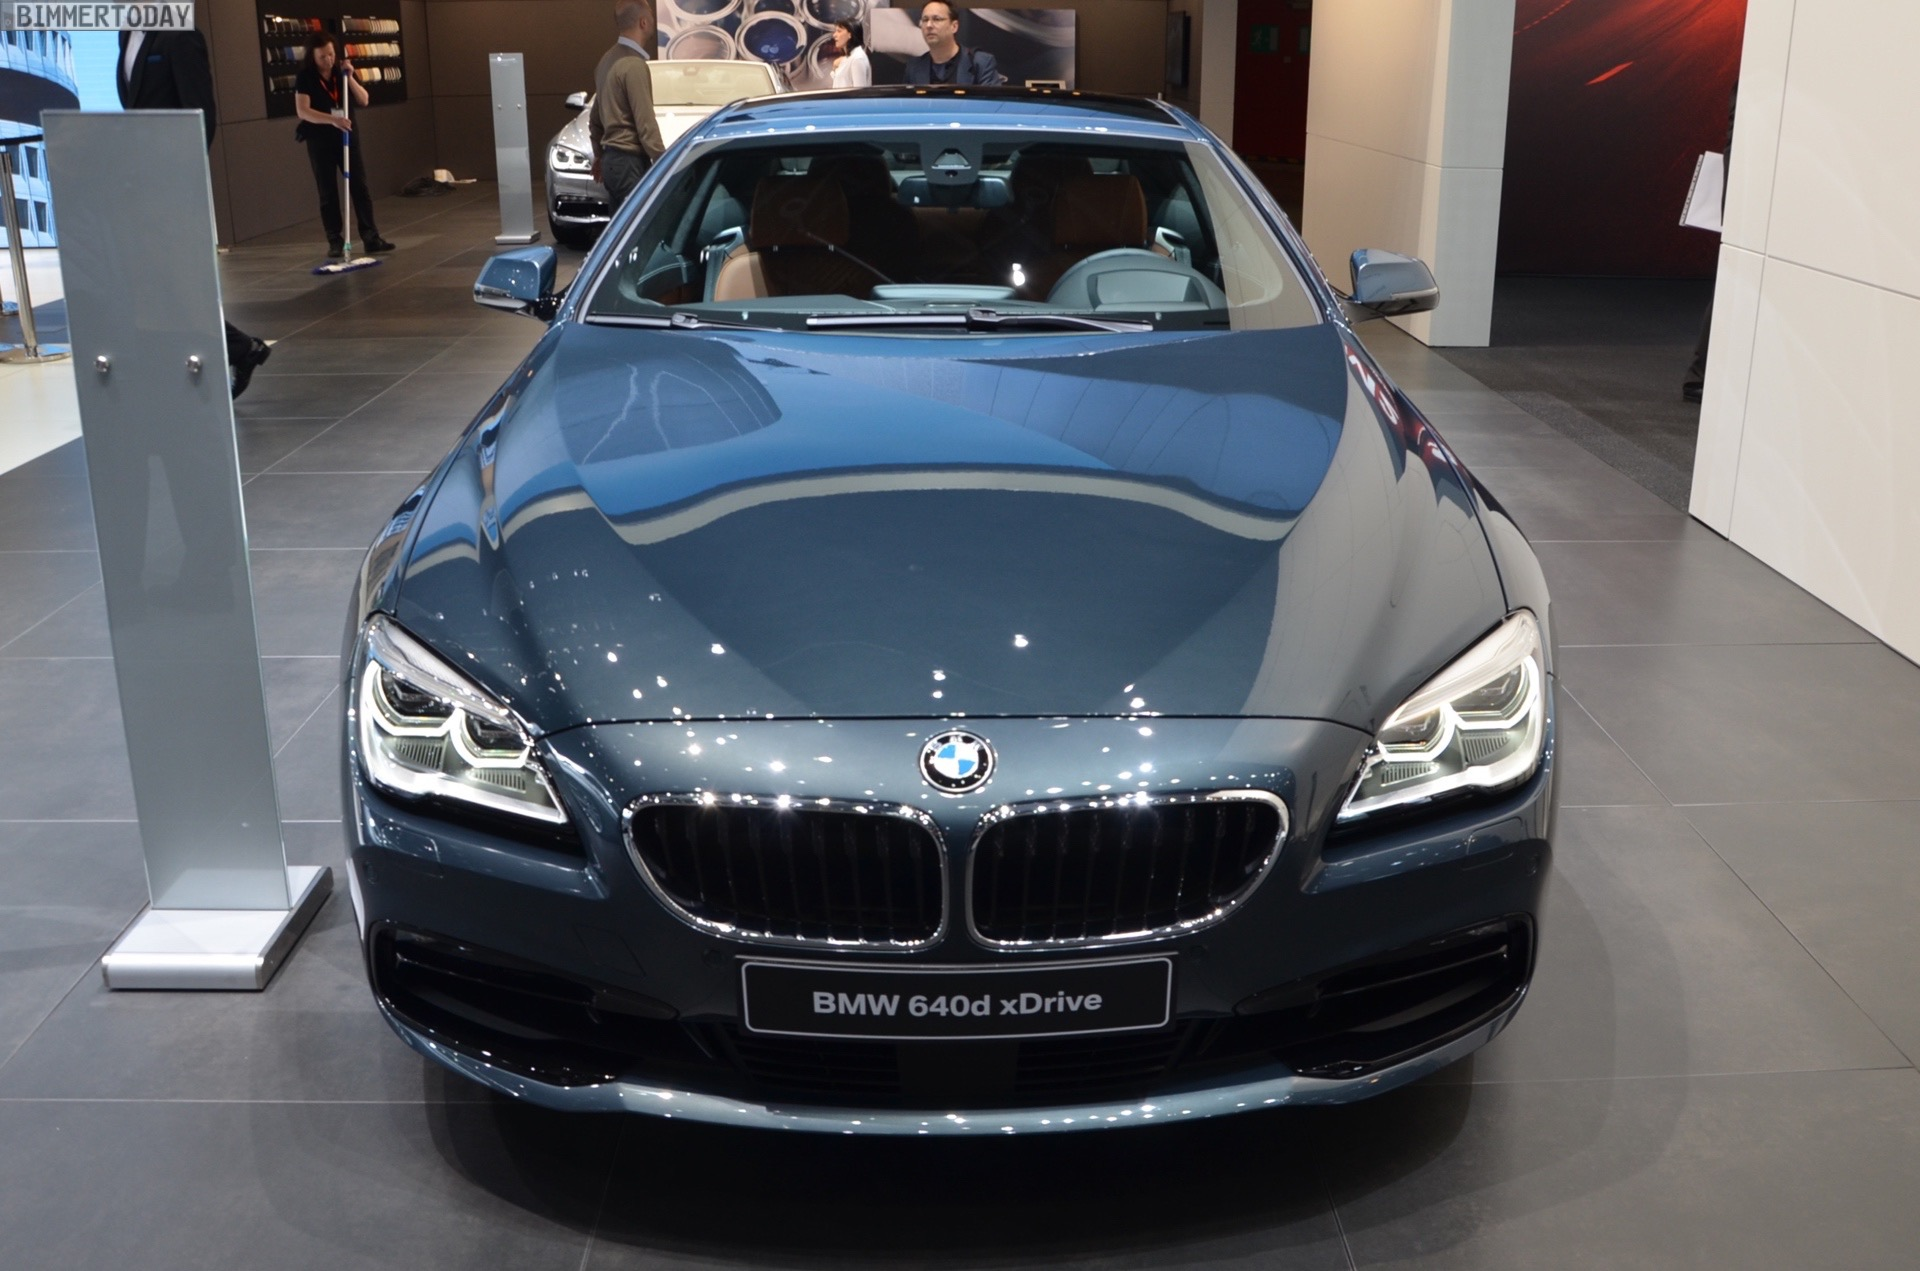 This Bmw 6 Series Coupe In Orinoco Metallic Is One Of A Kind